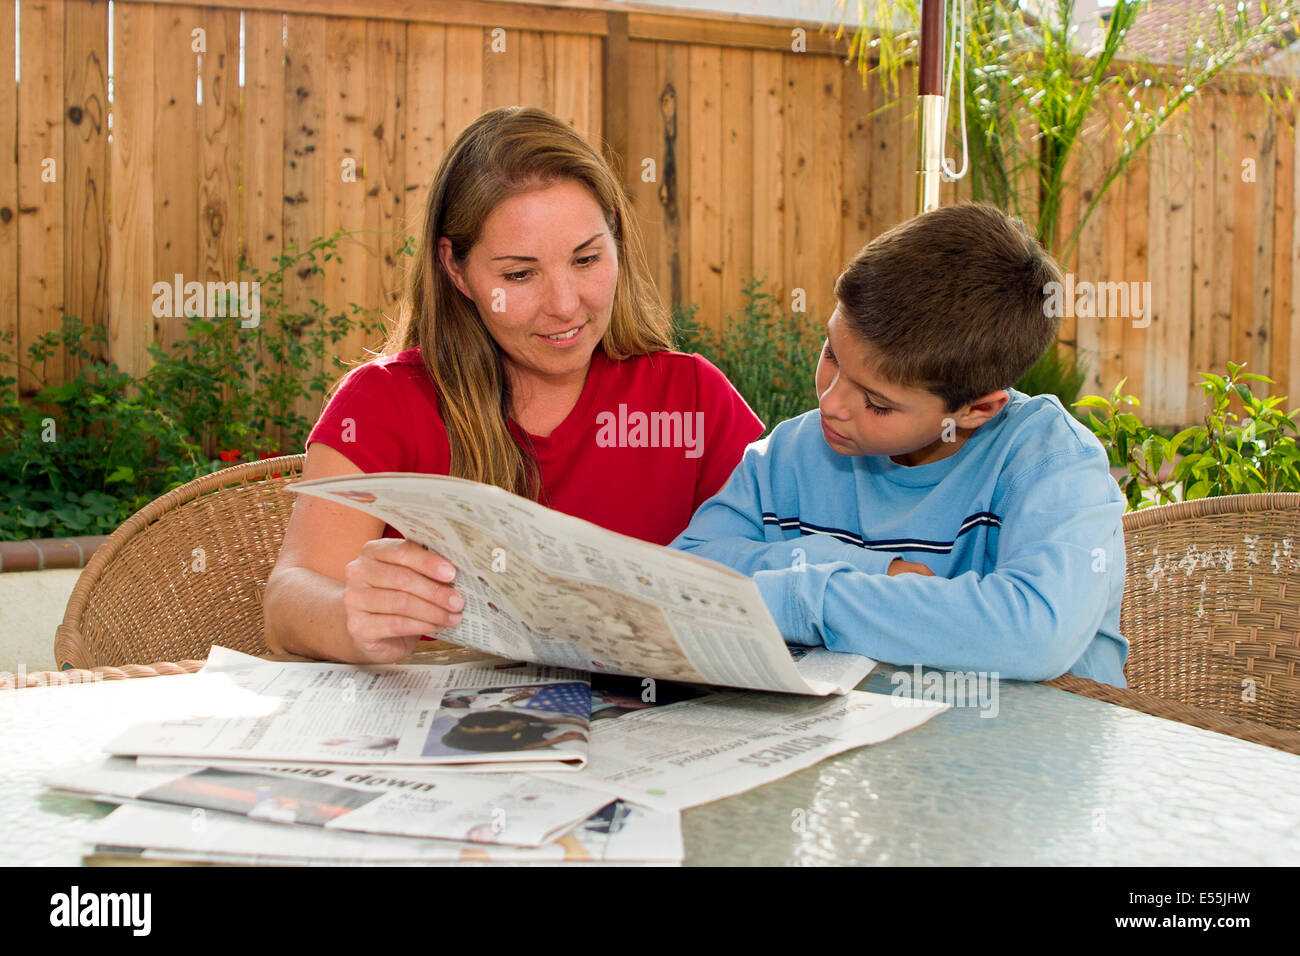 multi ethnic racial diversity racially diverse multicultural cultural mom child children son10-11 years old reading - Stock Image